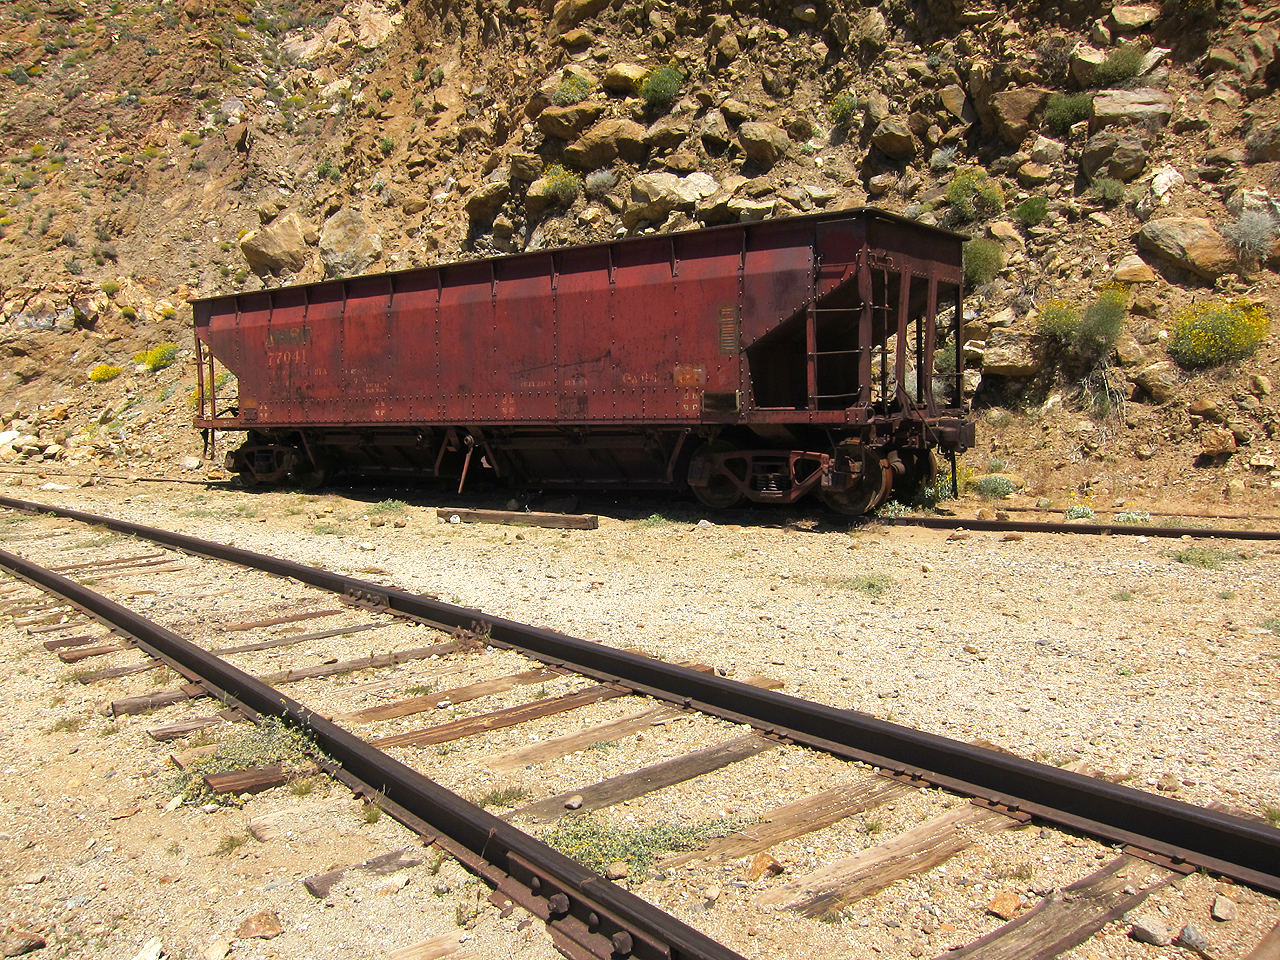 Old coal car?